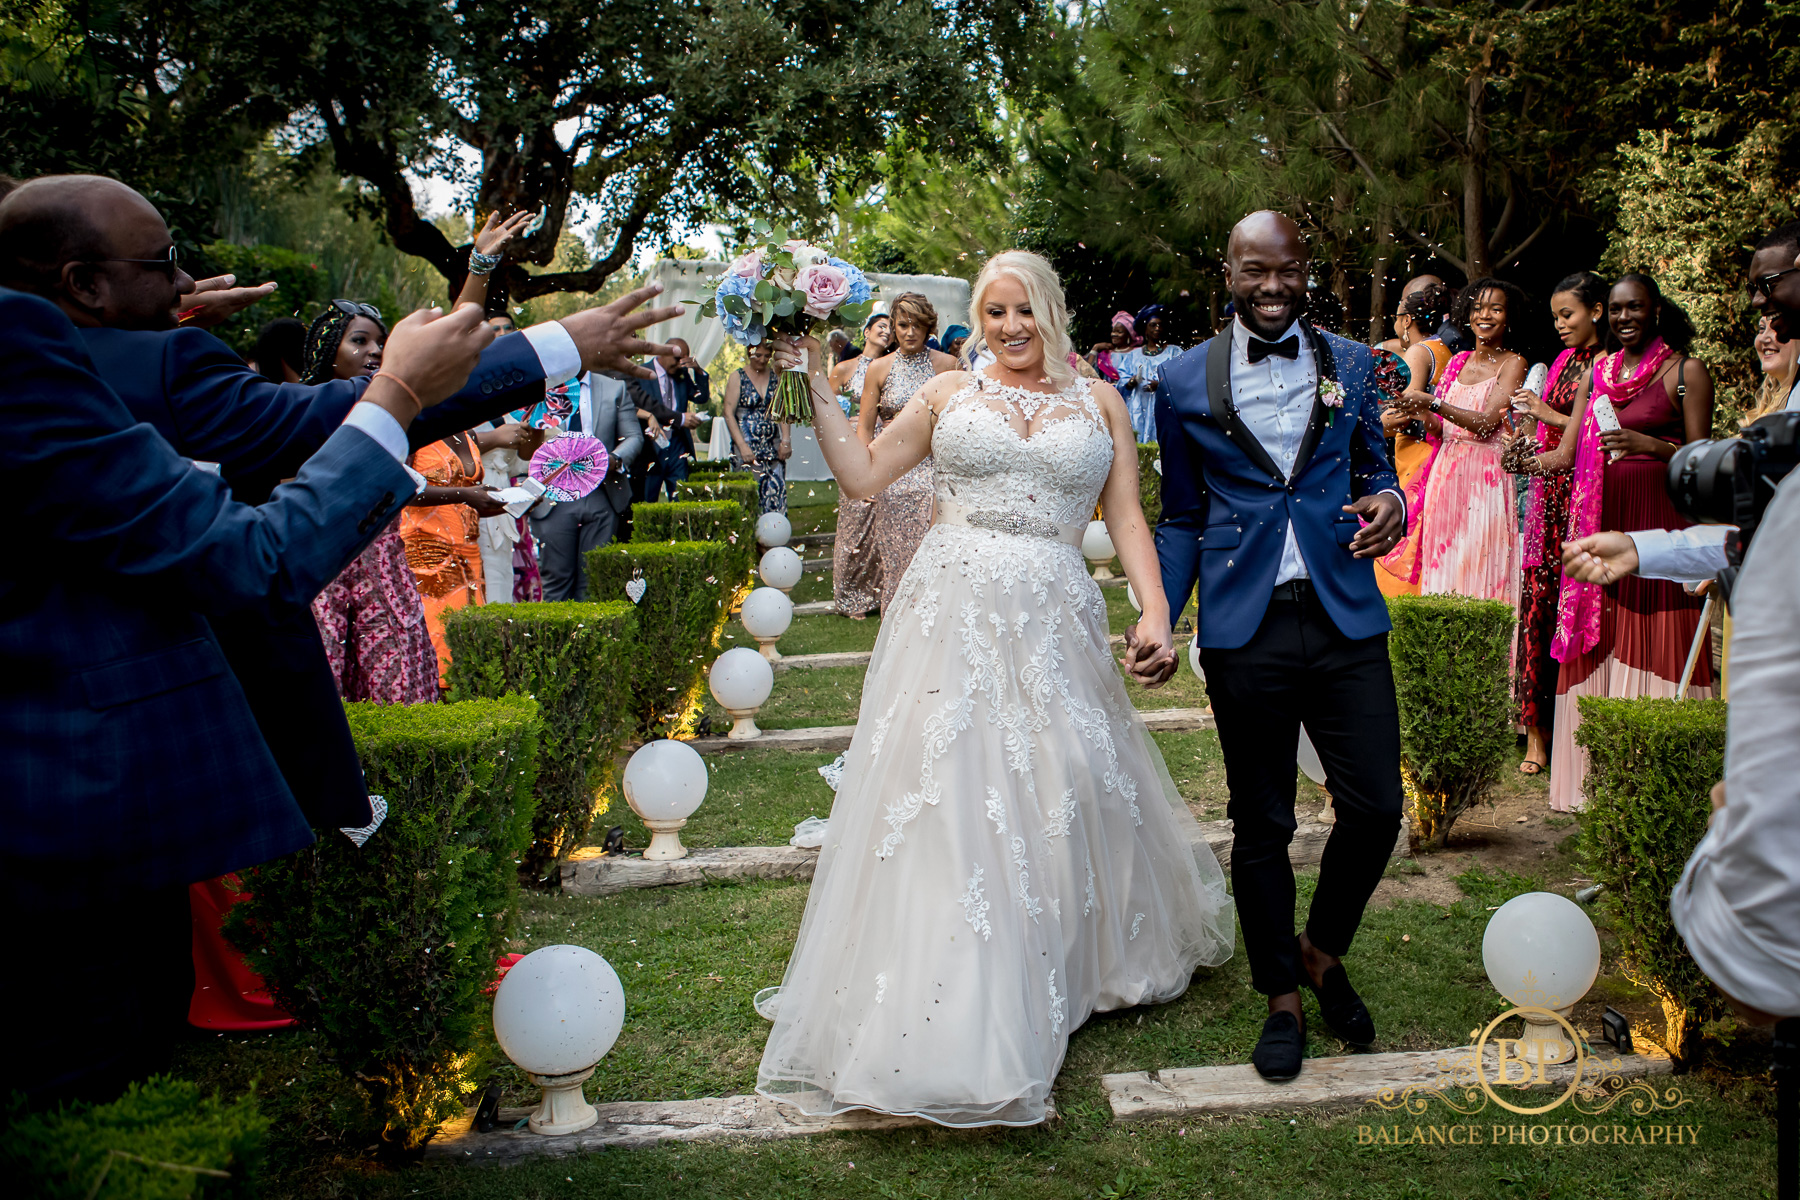 The newlyweds walking back down the aisle to greet their guests - Balance Photography